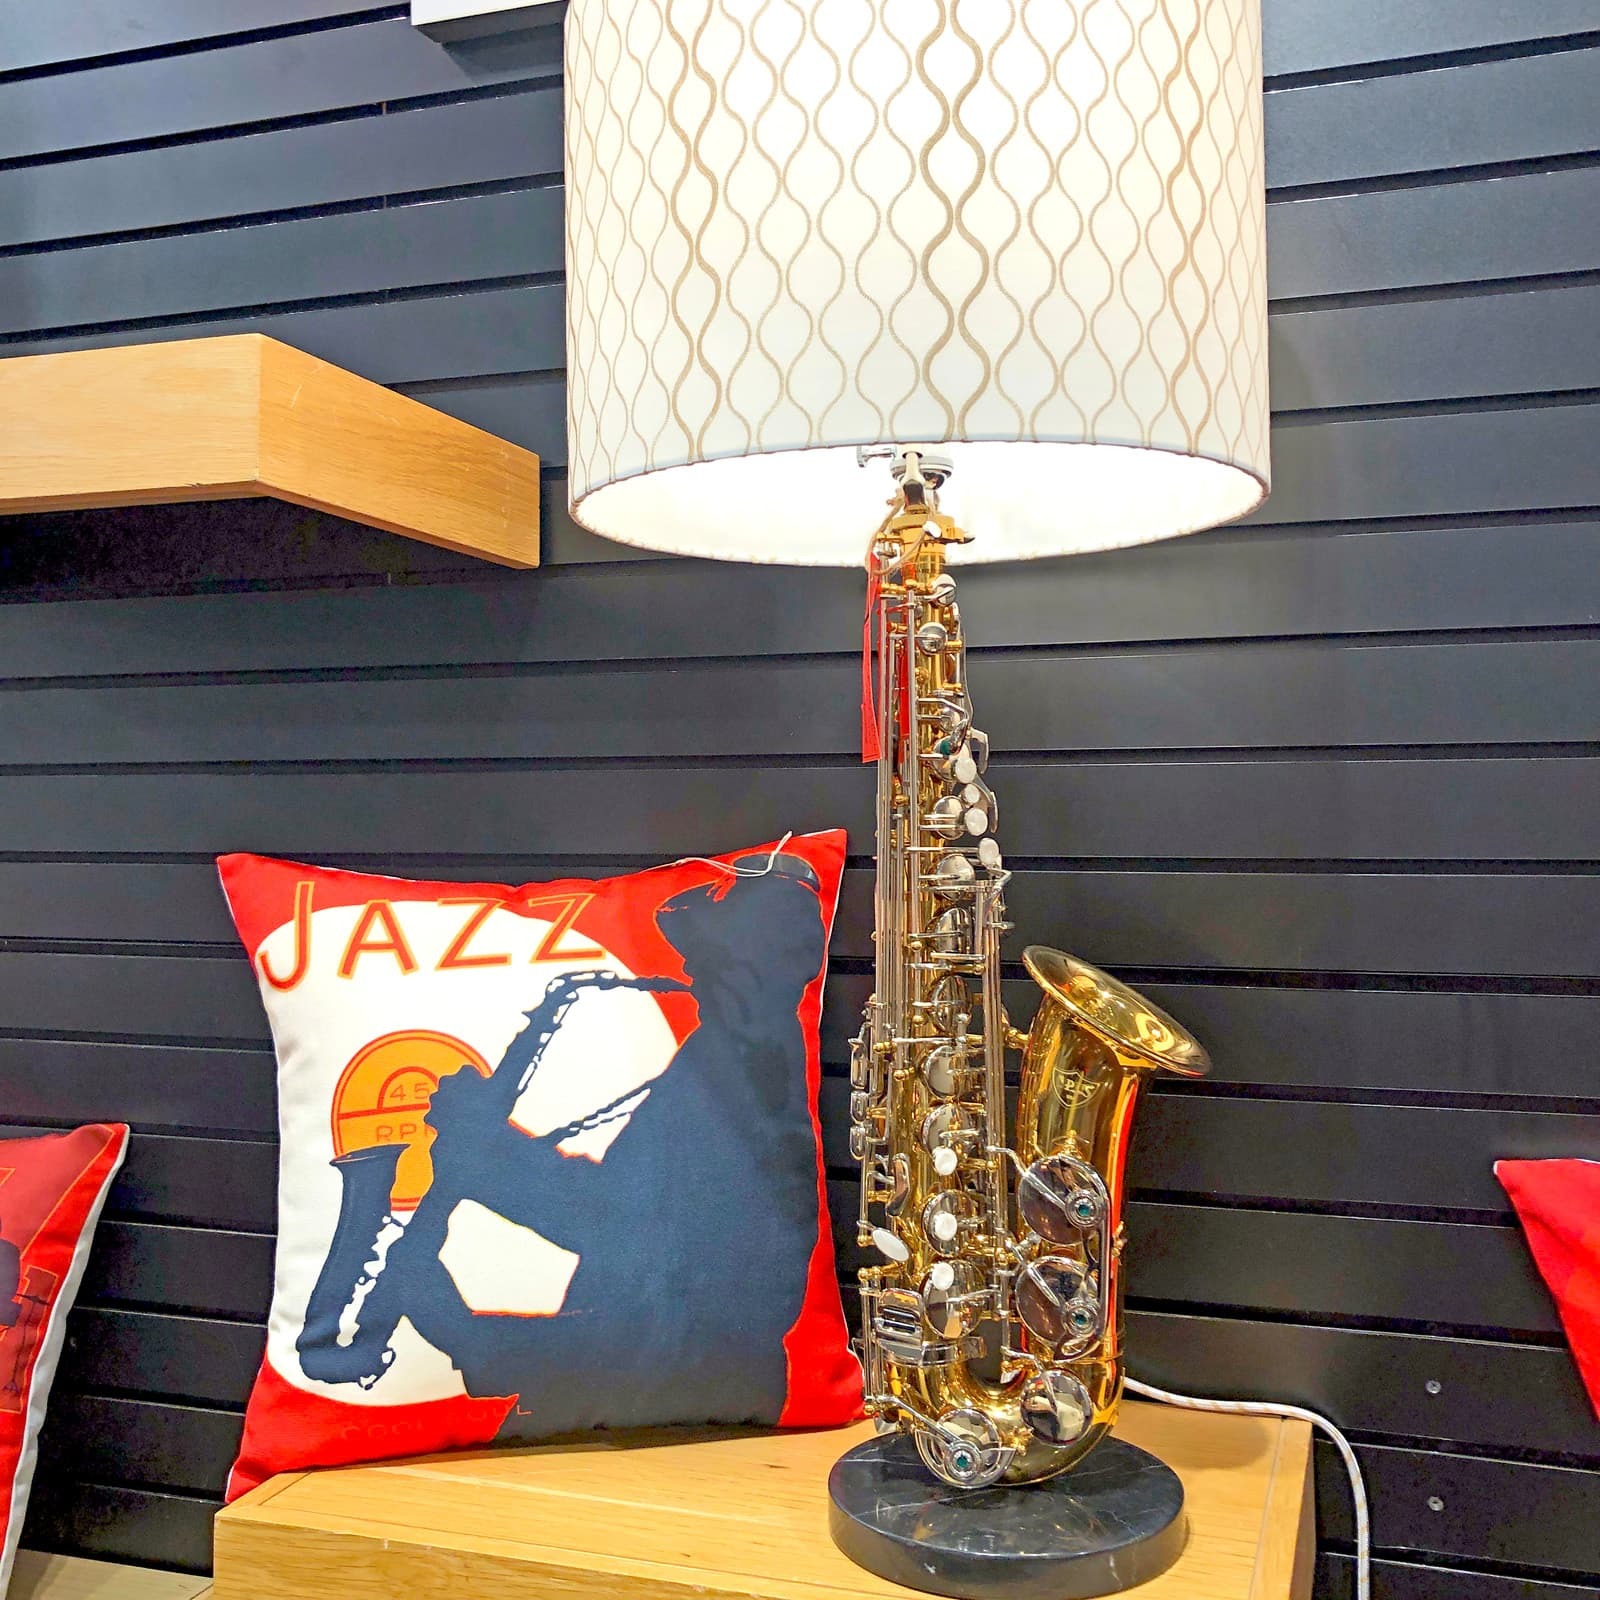 Rosie's Workshop original saxaphone side table light. All parts are UL component listed (c UR us) for United States and Canada.